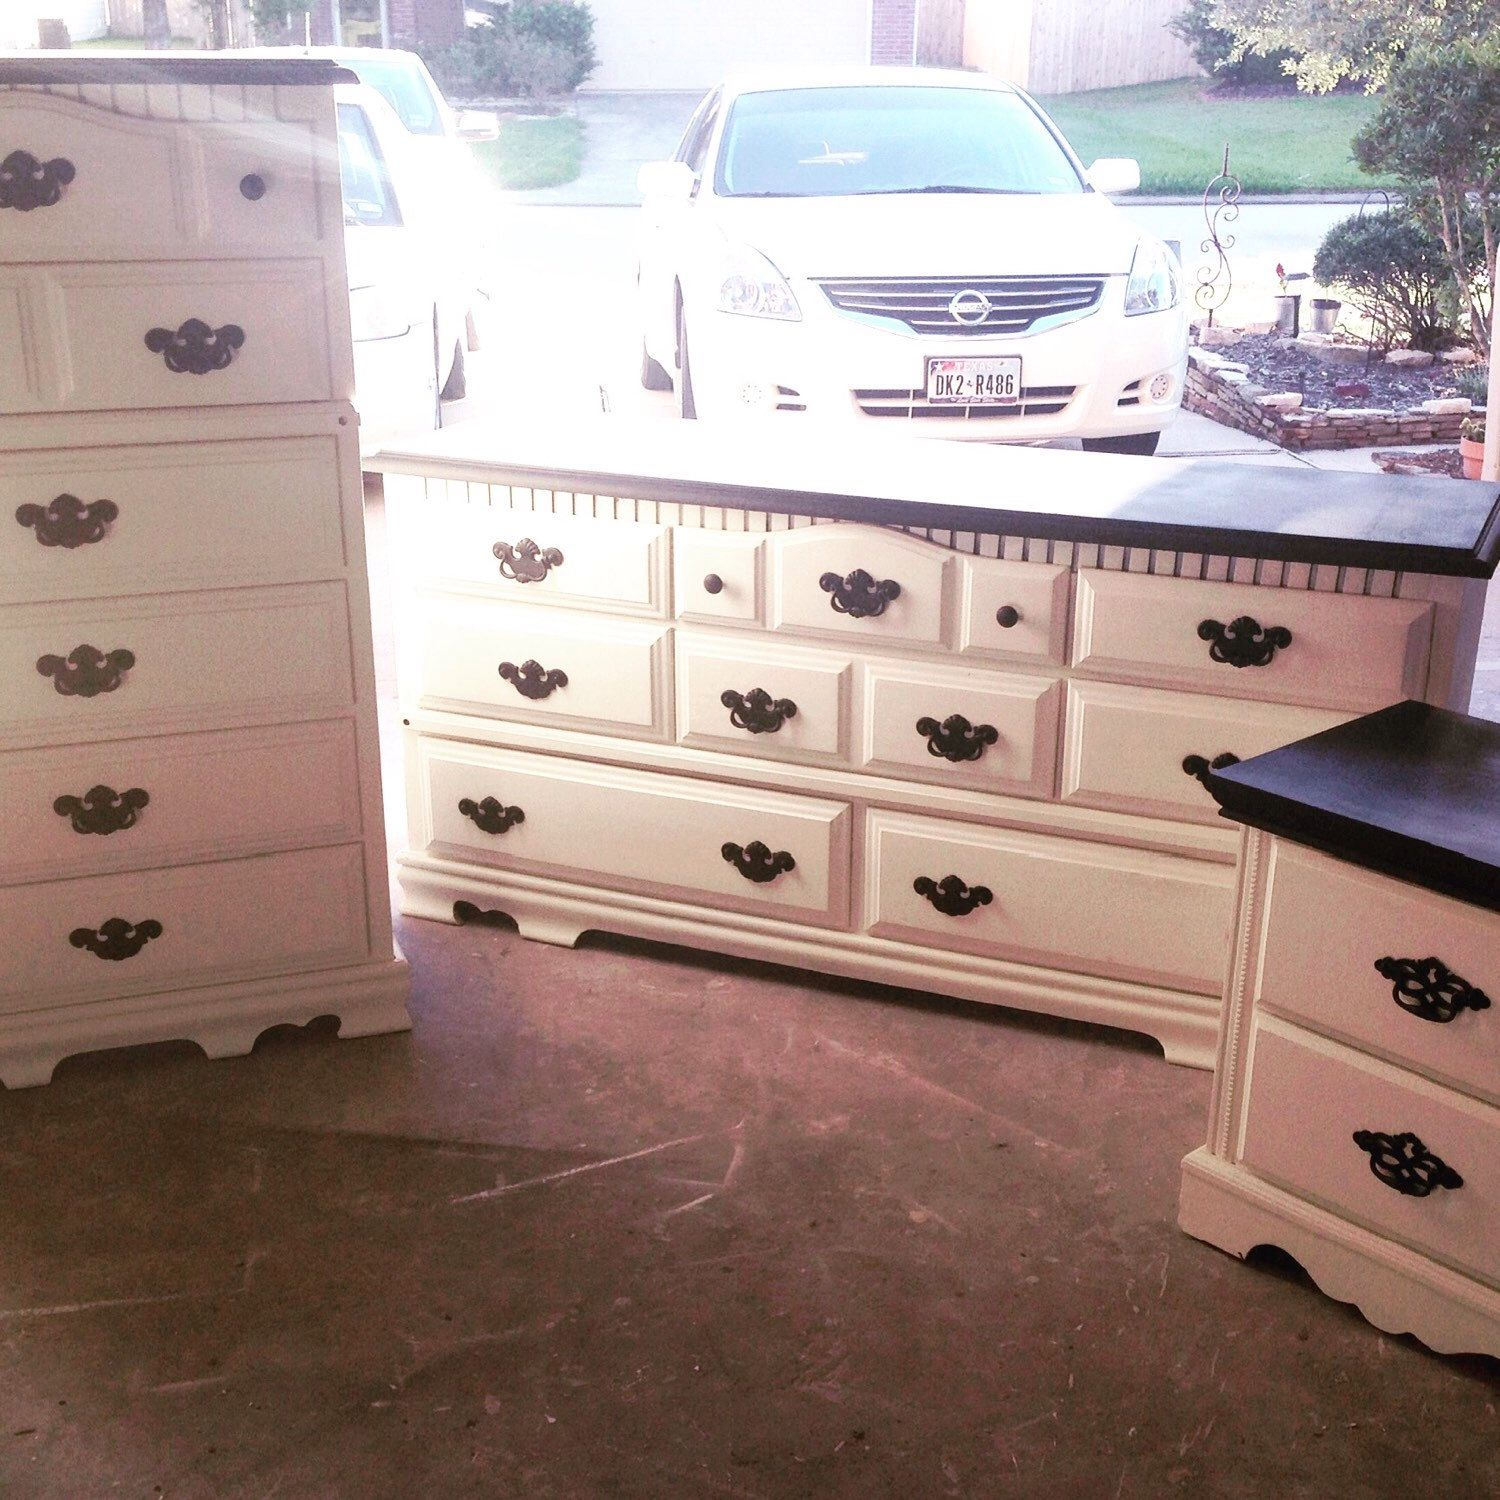 Pair of Bedroom Dressers + Nightstand by EndlessEnjoyments on Etsy https://www.etsy.com/listing/252861190/pair-of-bedroom-dressers-nightstand